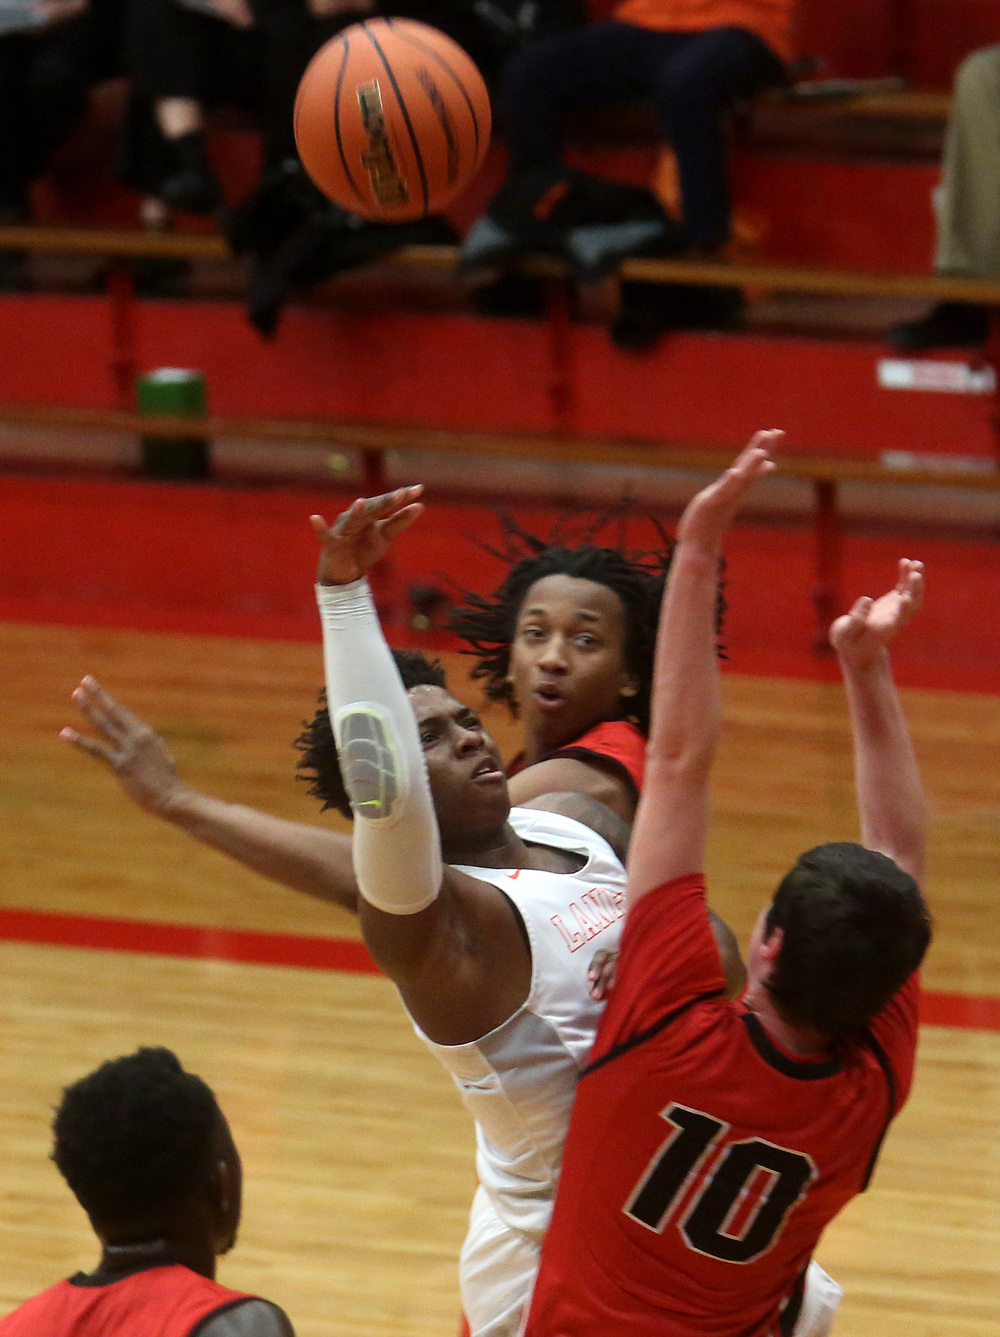 Lanphier's Yaakema Rose at center defends while Springfield player Trevor Minder tries to get the ball past him. David Spencer/The State Journal Register